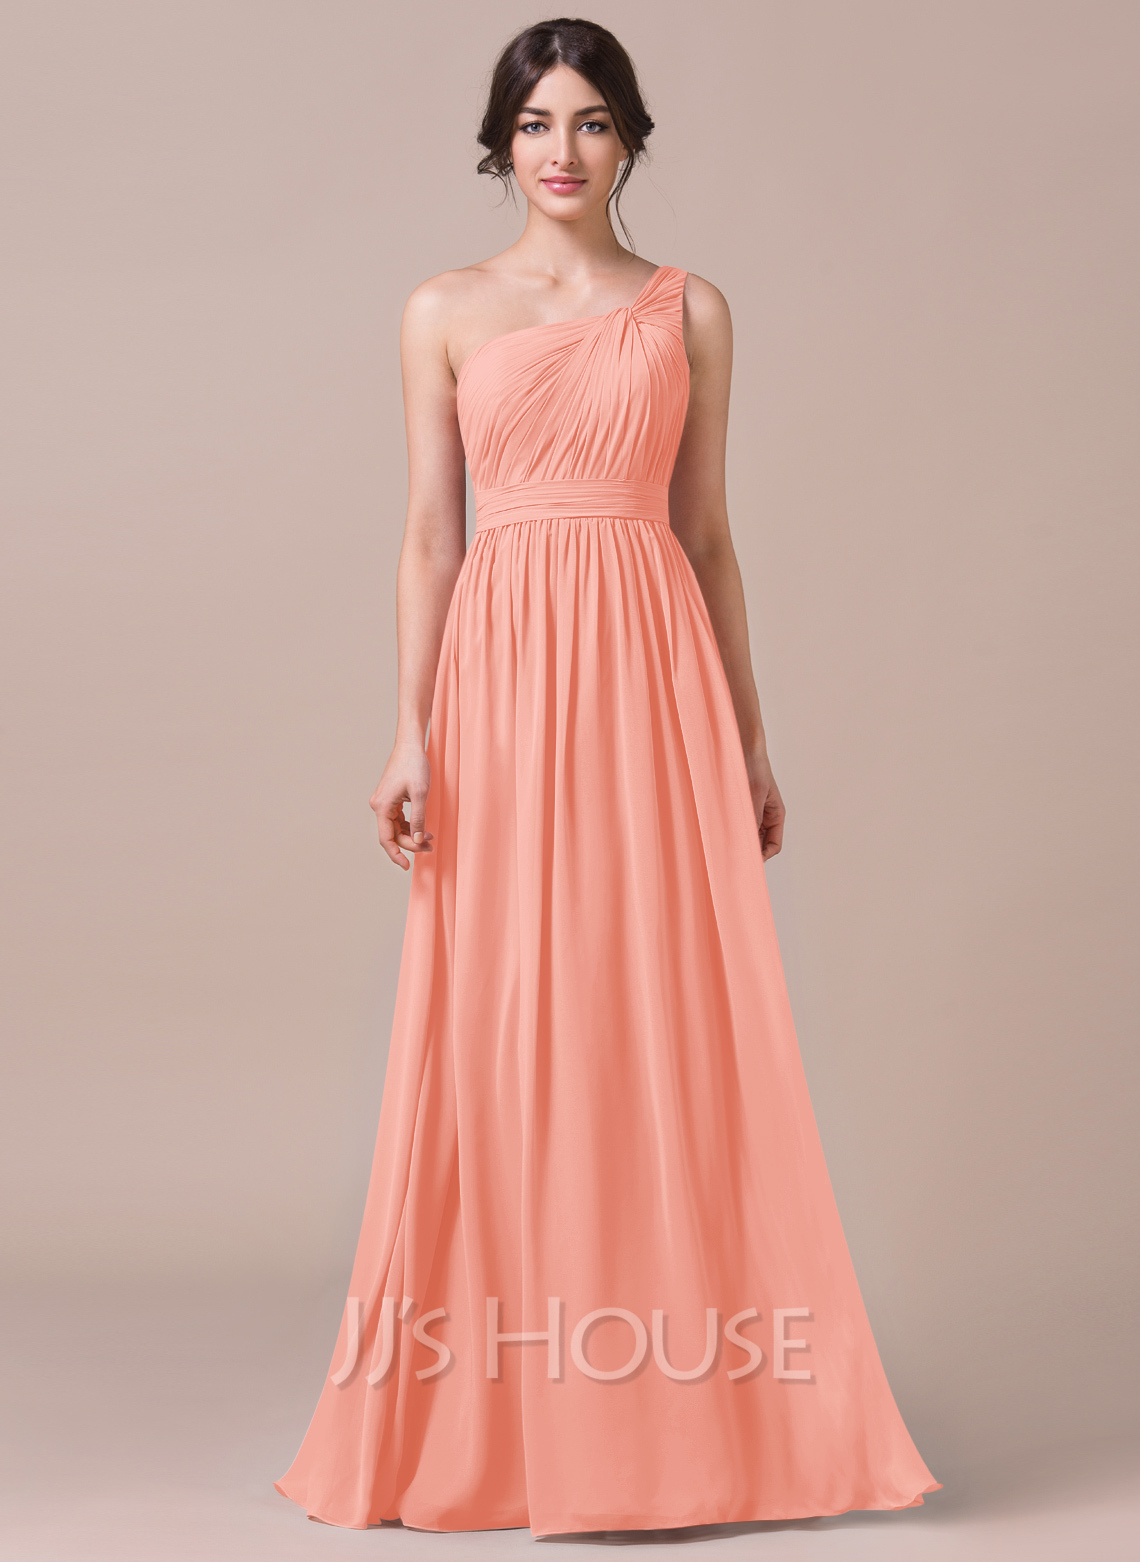 a5b0e1cb9ebc7 A-Line One-Shoulder Floor-length Chiffon Bridesmaid Dress. Loading zoom